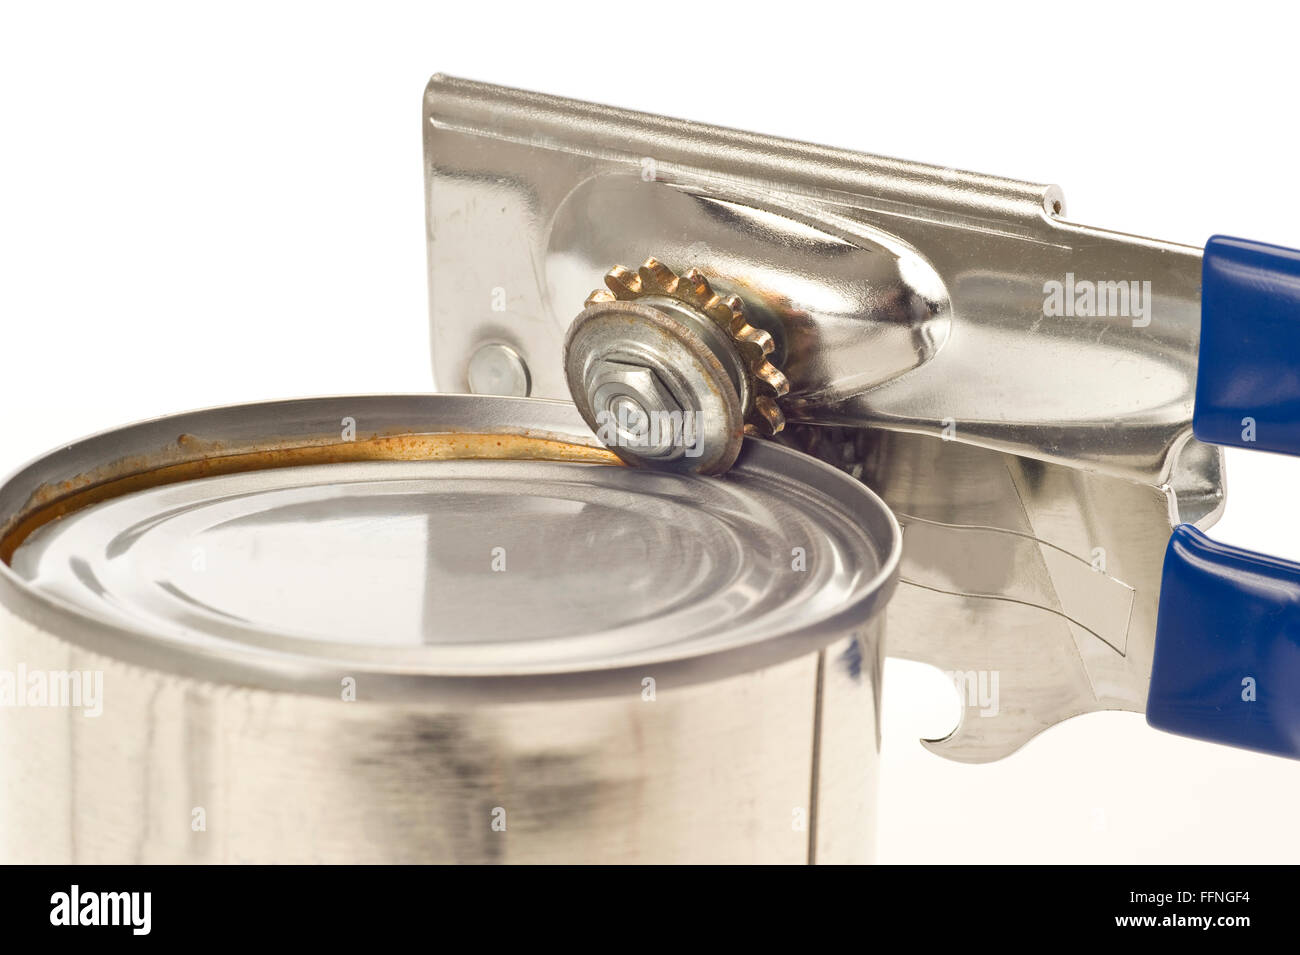 Trusty Old Can Opener - Stock Image